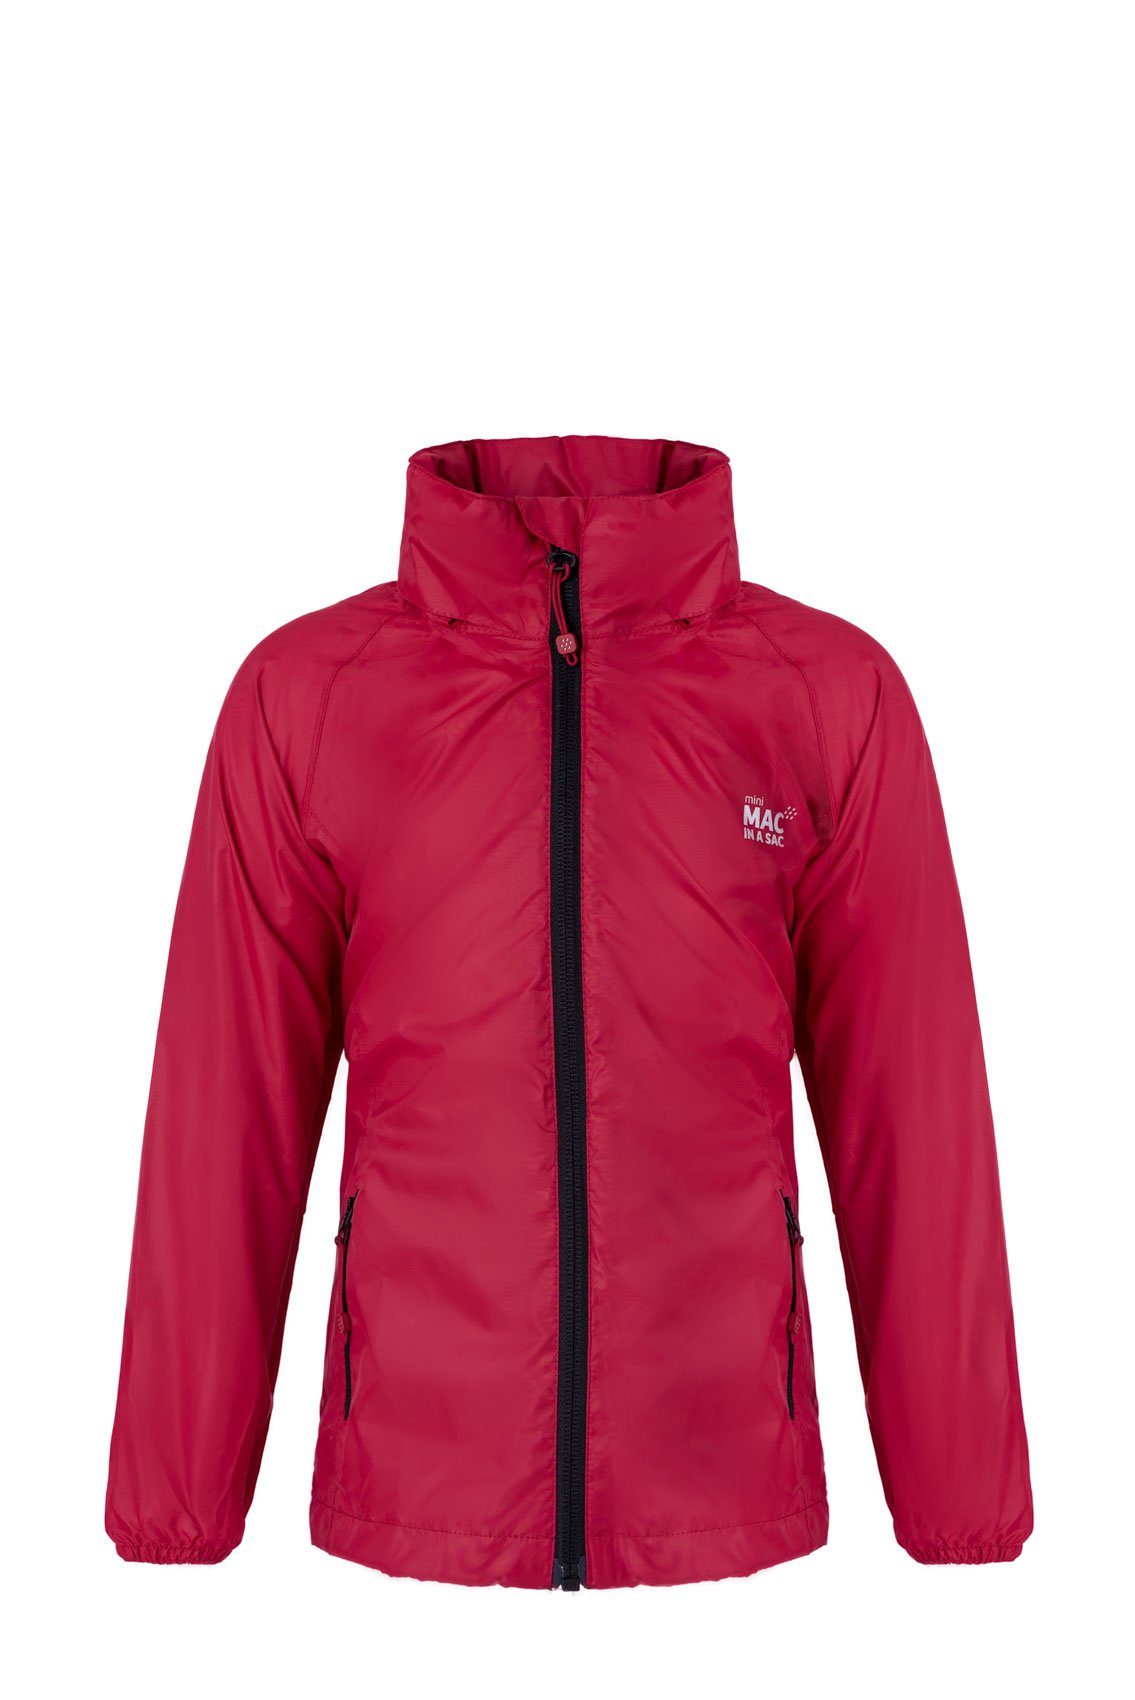 Kids Packable Waterproof Jacket - Red